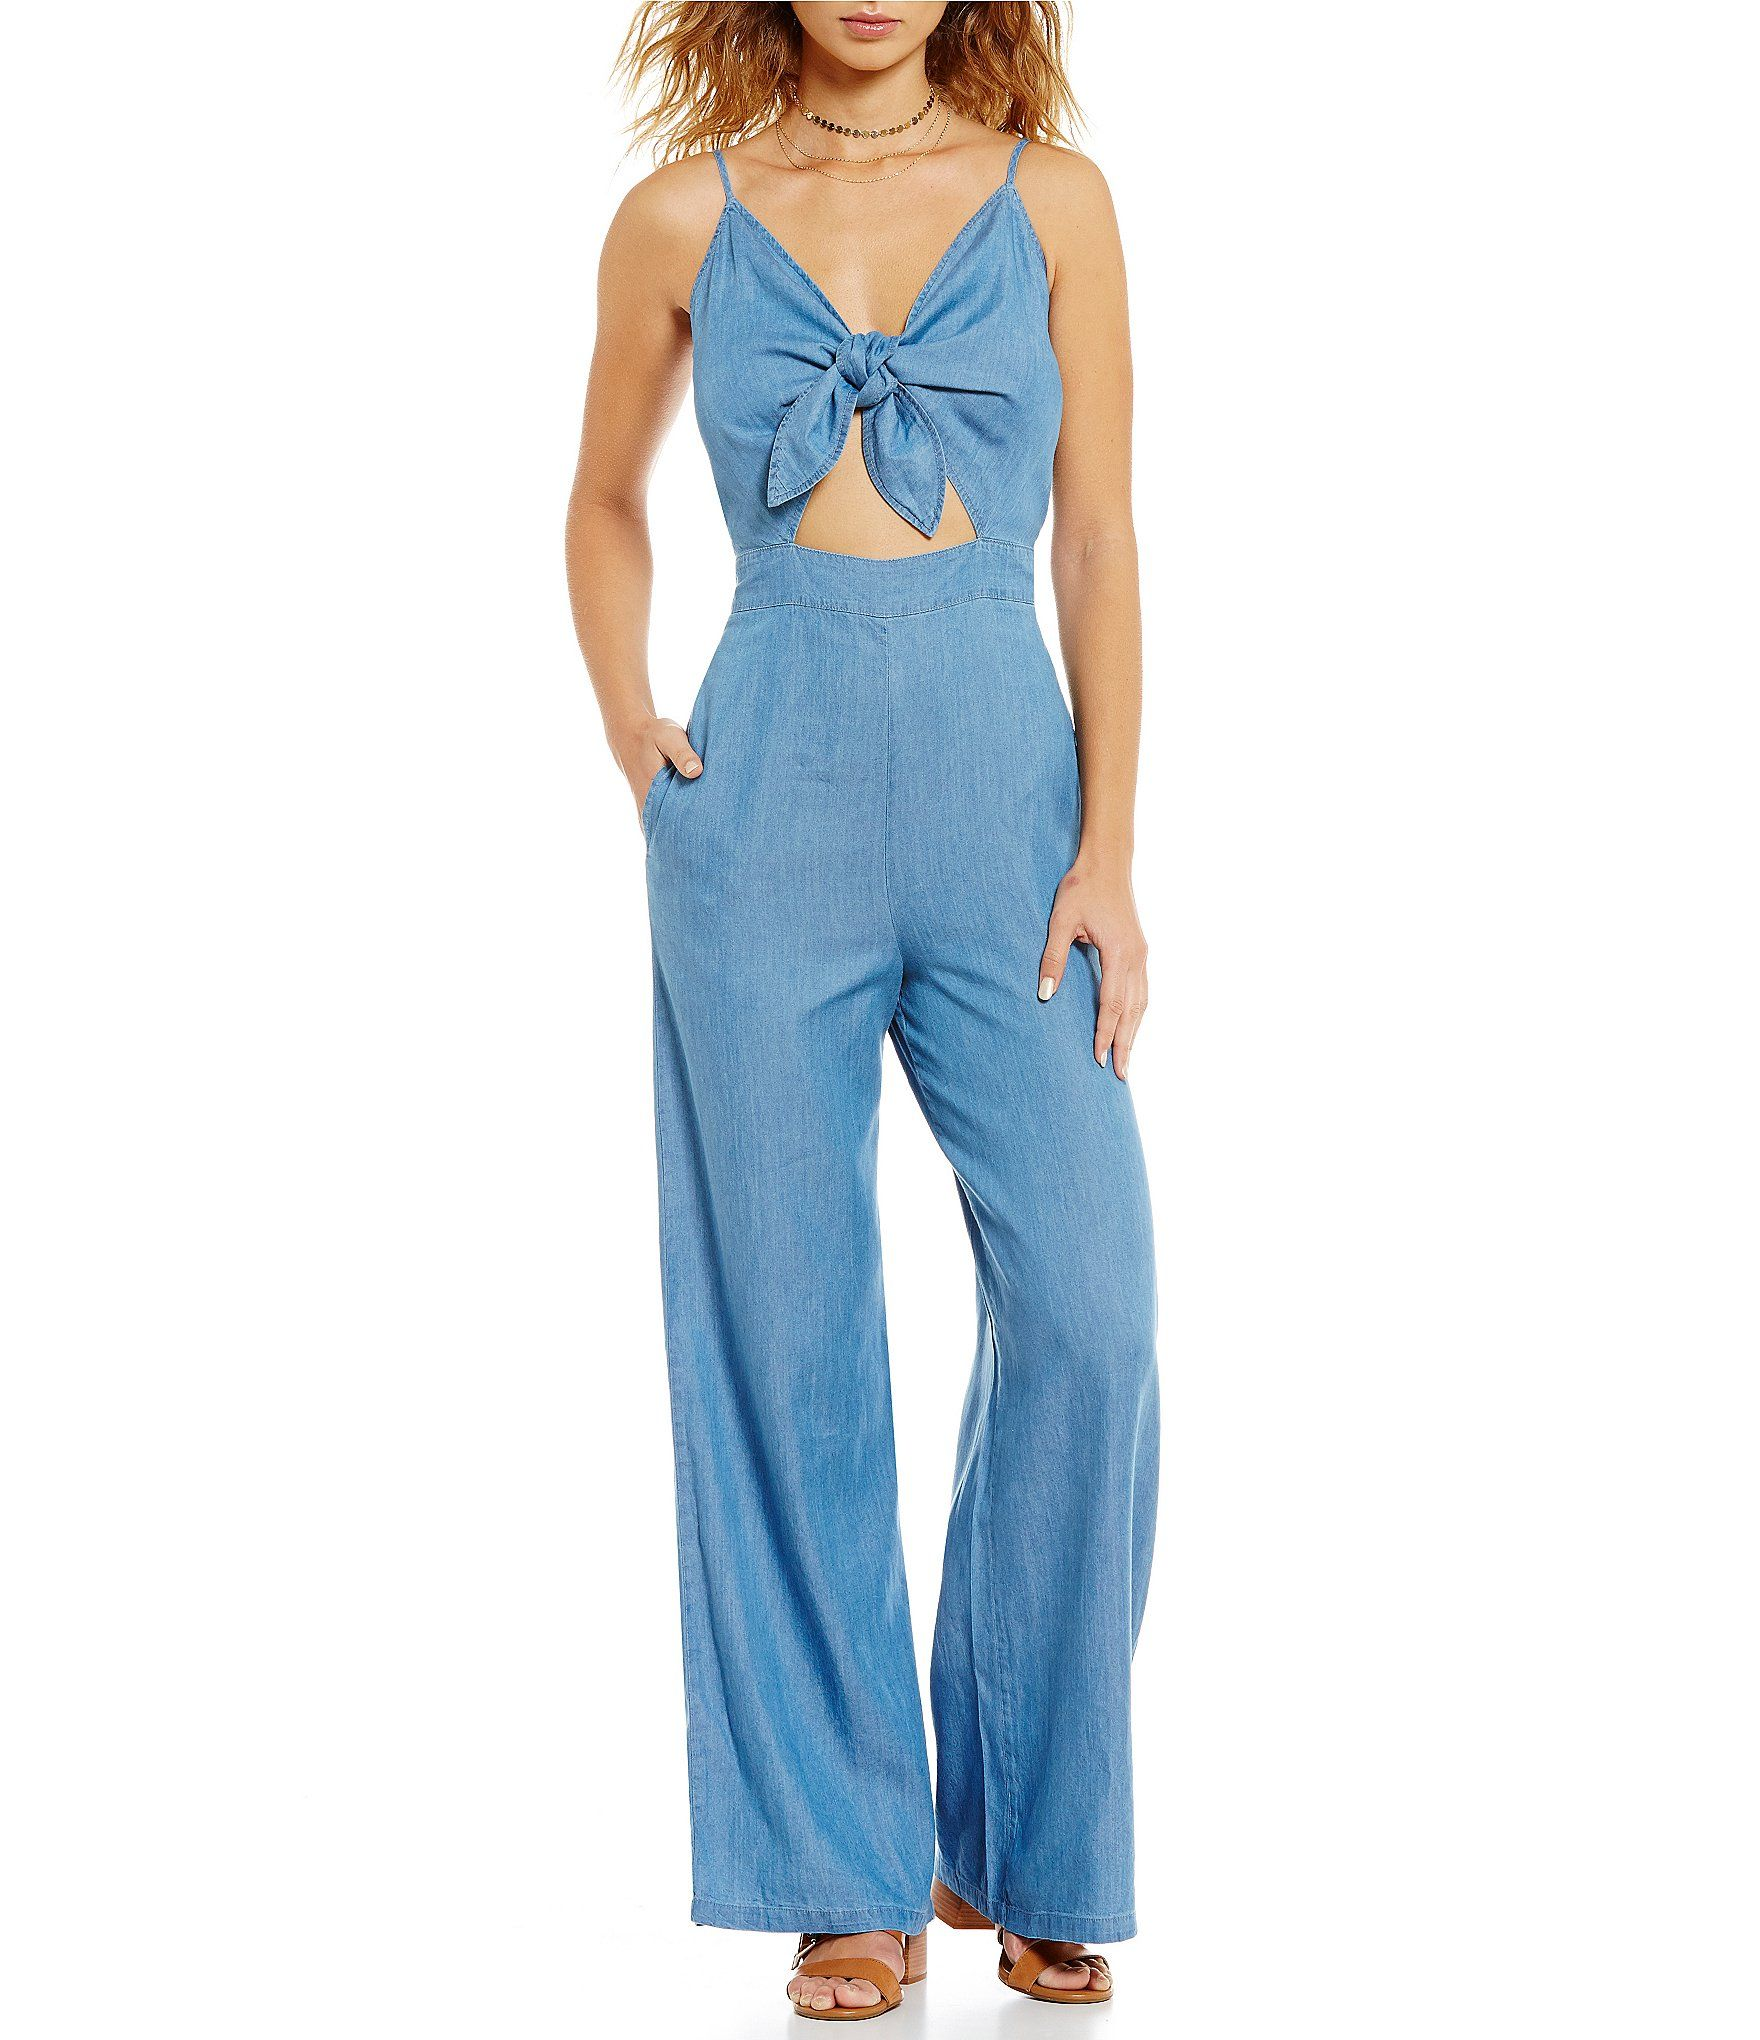 aaea889d9c GB Chambray Tie Front Cutout Jumpsuit  Dillards